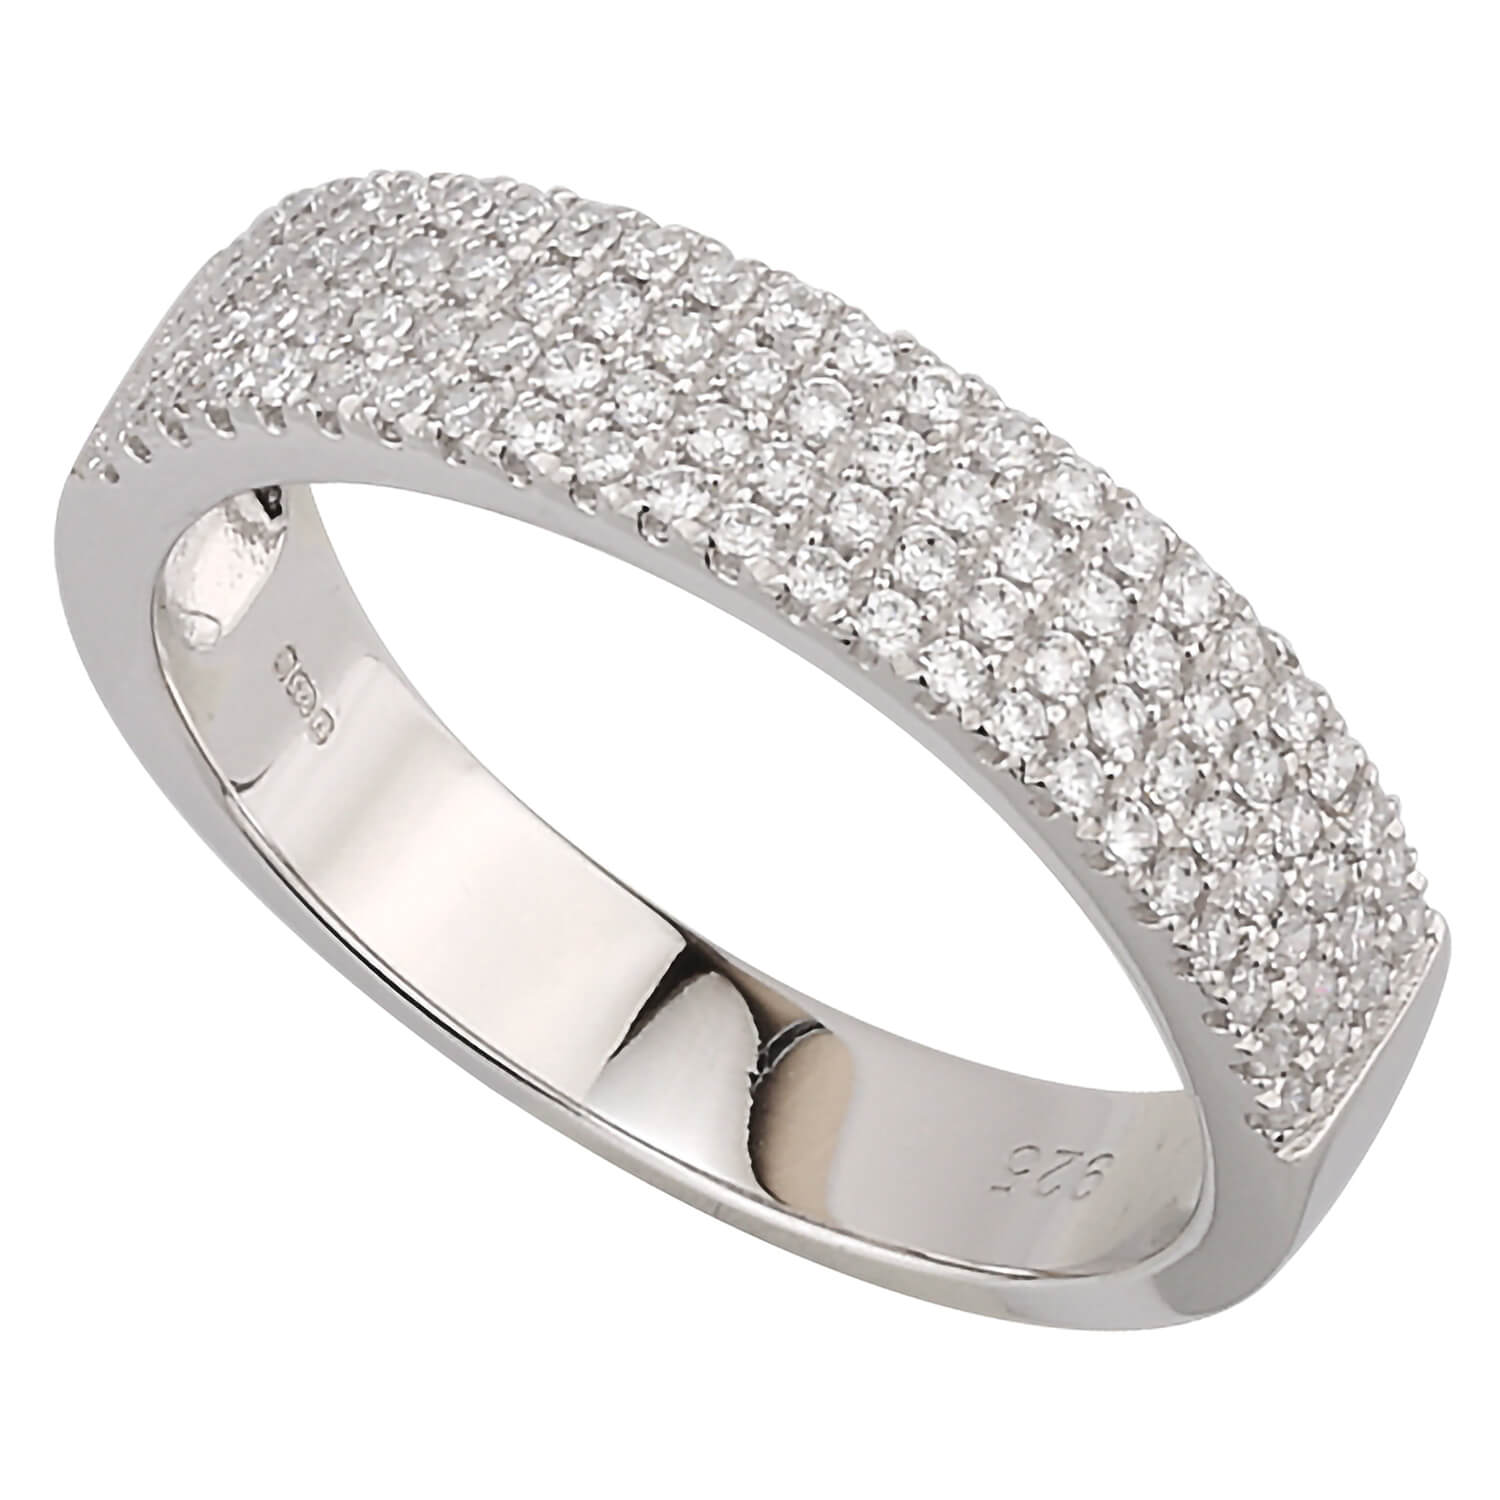 Silver cubic zirconia dress ring